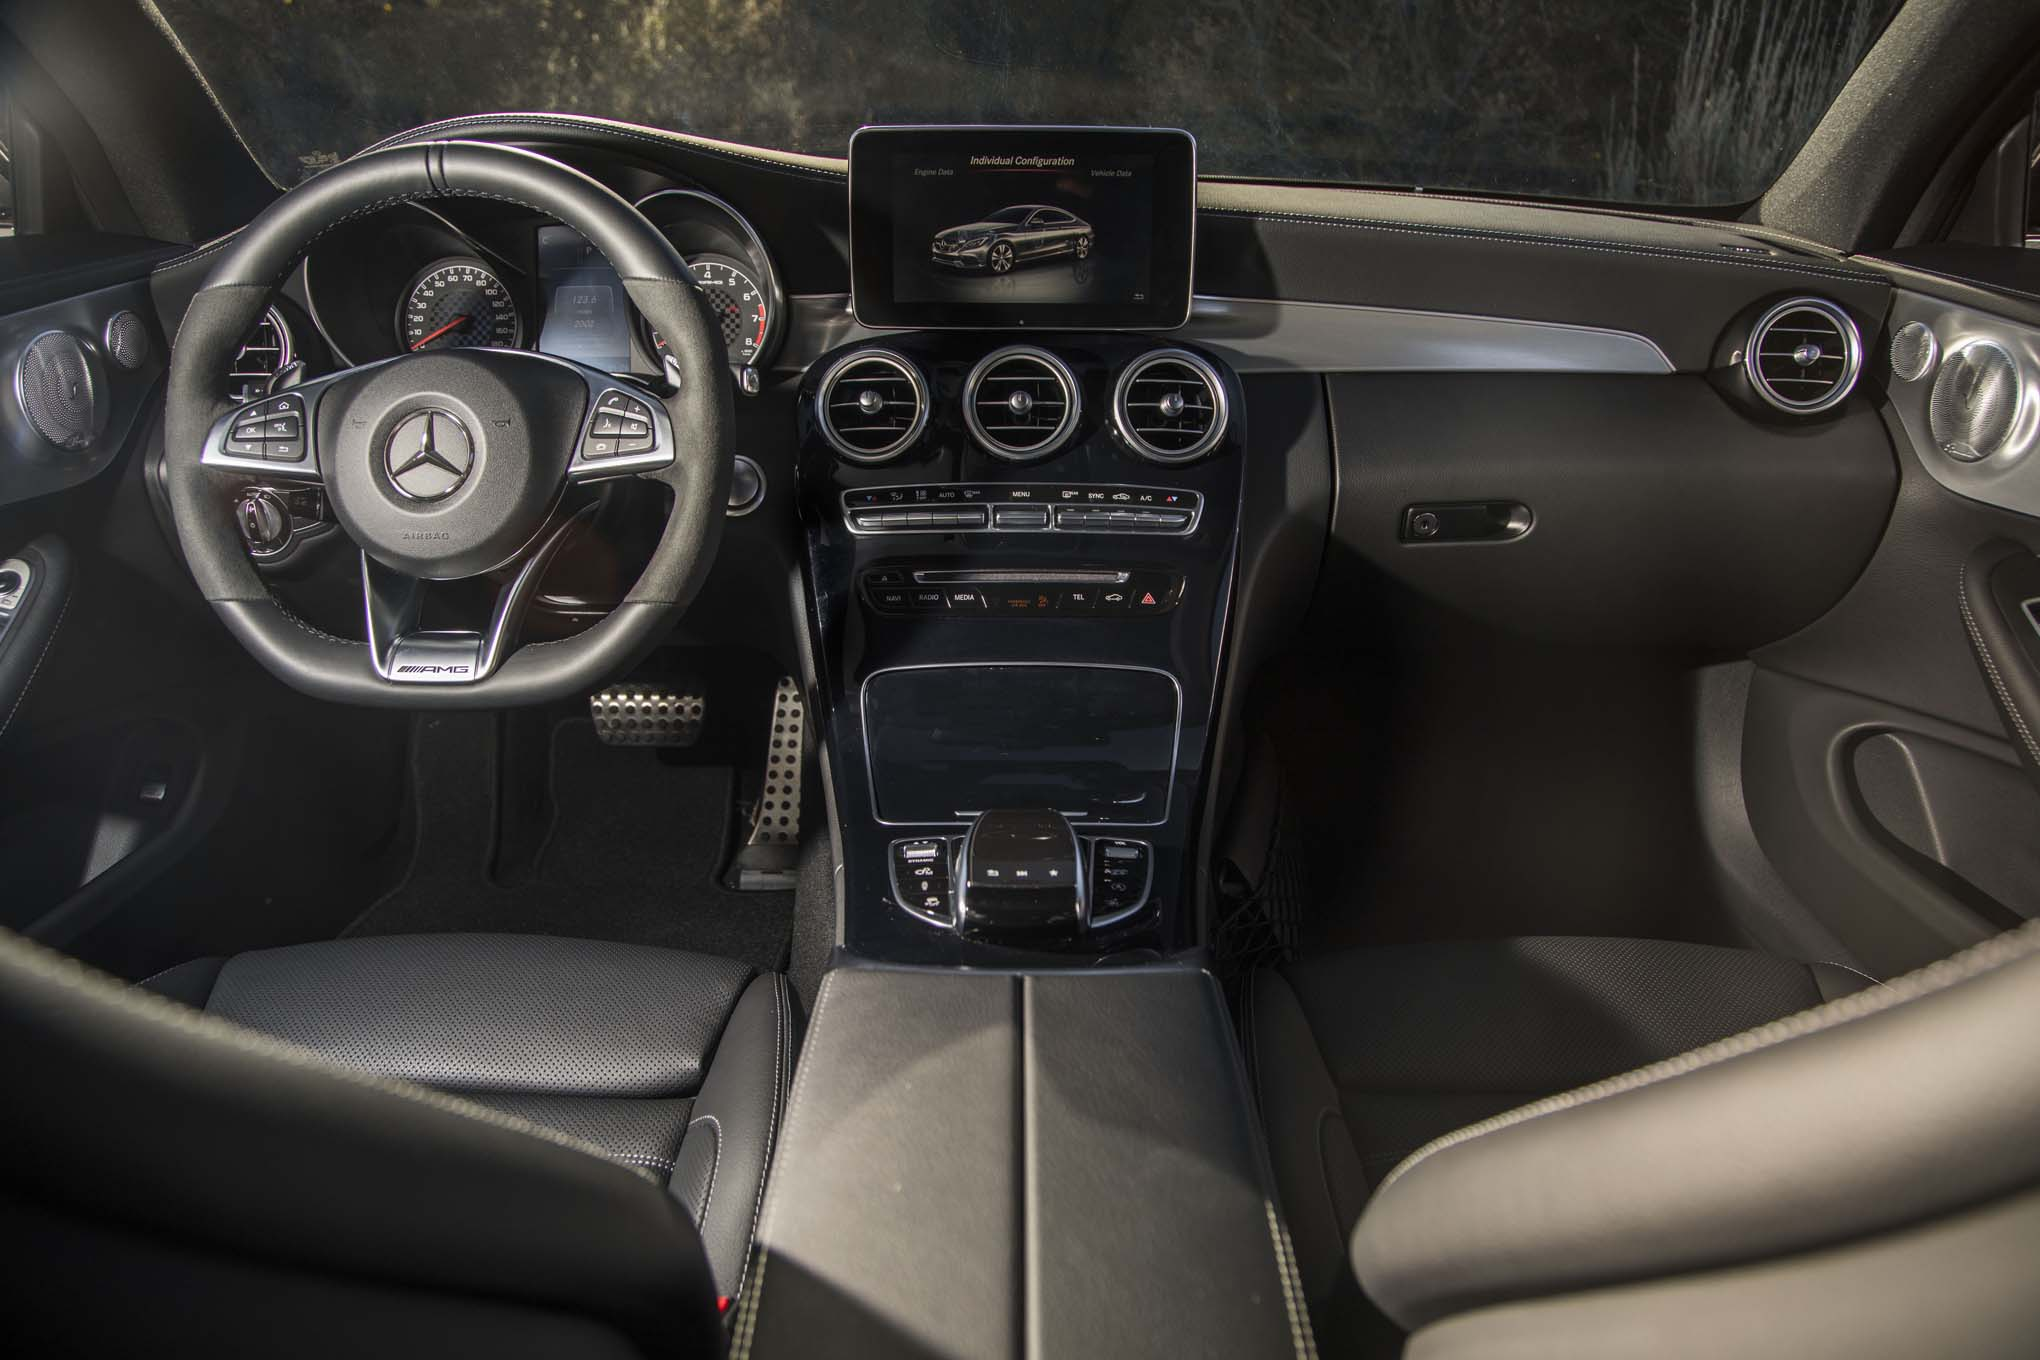 2017 Mercedes AMG C43 Coupe Interior 02